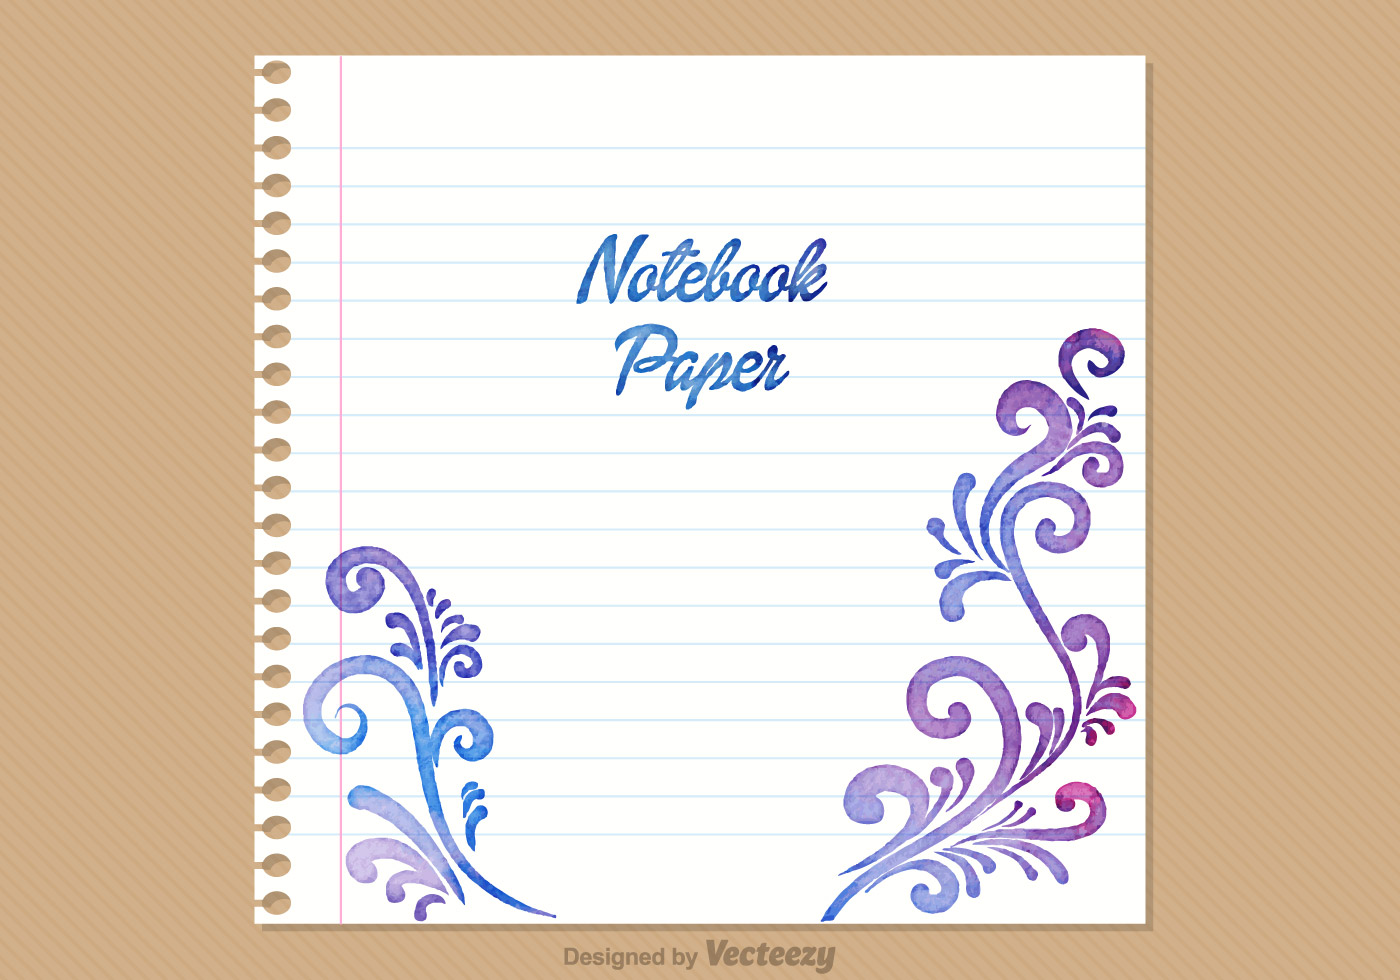 Free Notebook Paper Vector Background - Download Free ...